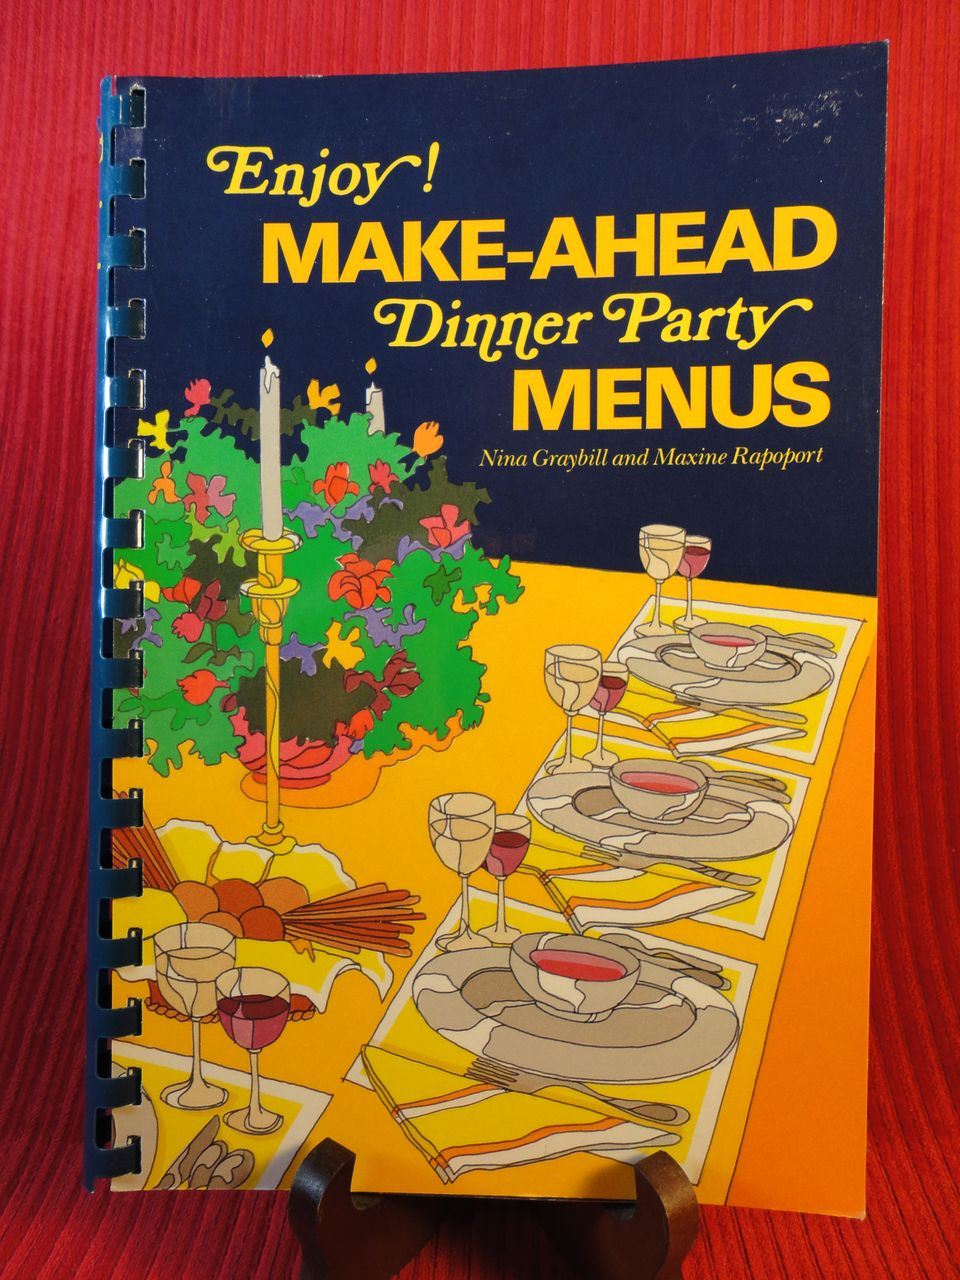 &quot;Enjoy! Make-Ahead Dinner Party Menus,&quot; Nina Graybill and Maxine Rapoport, 1989, First Edition